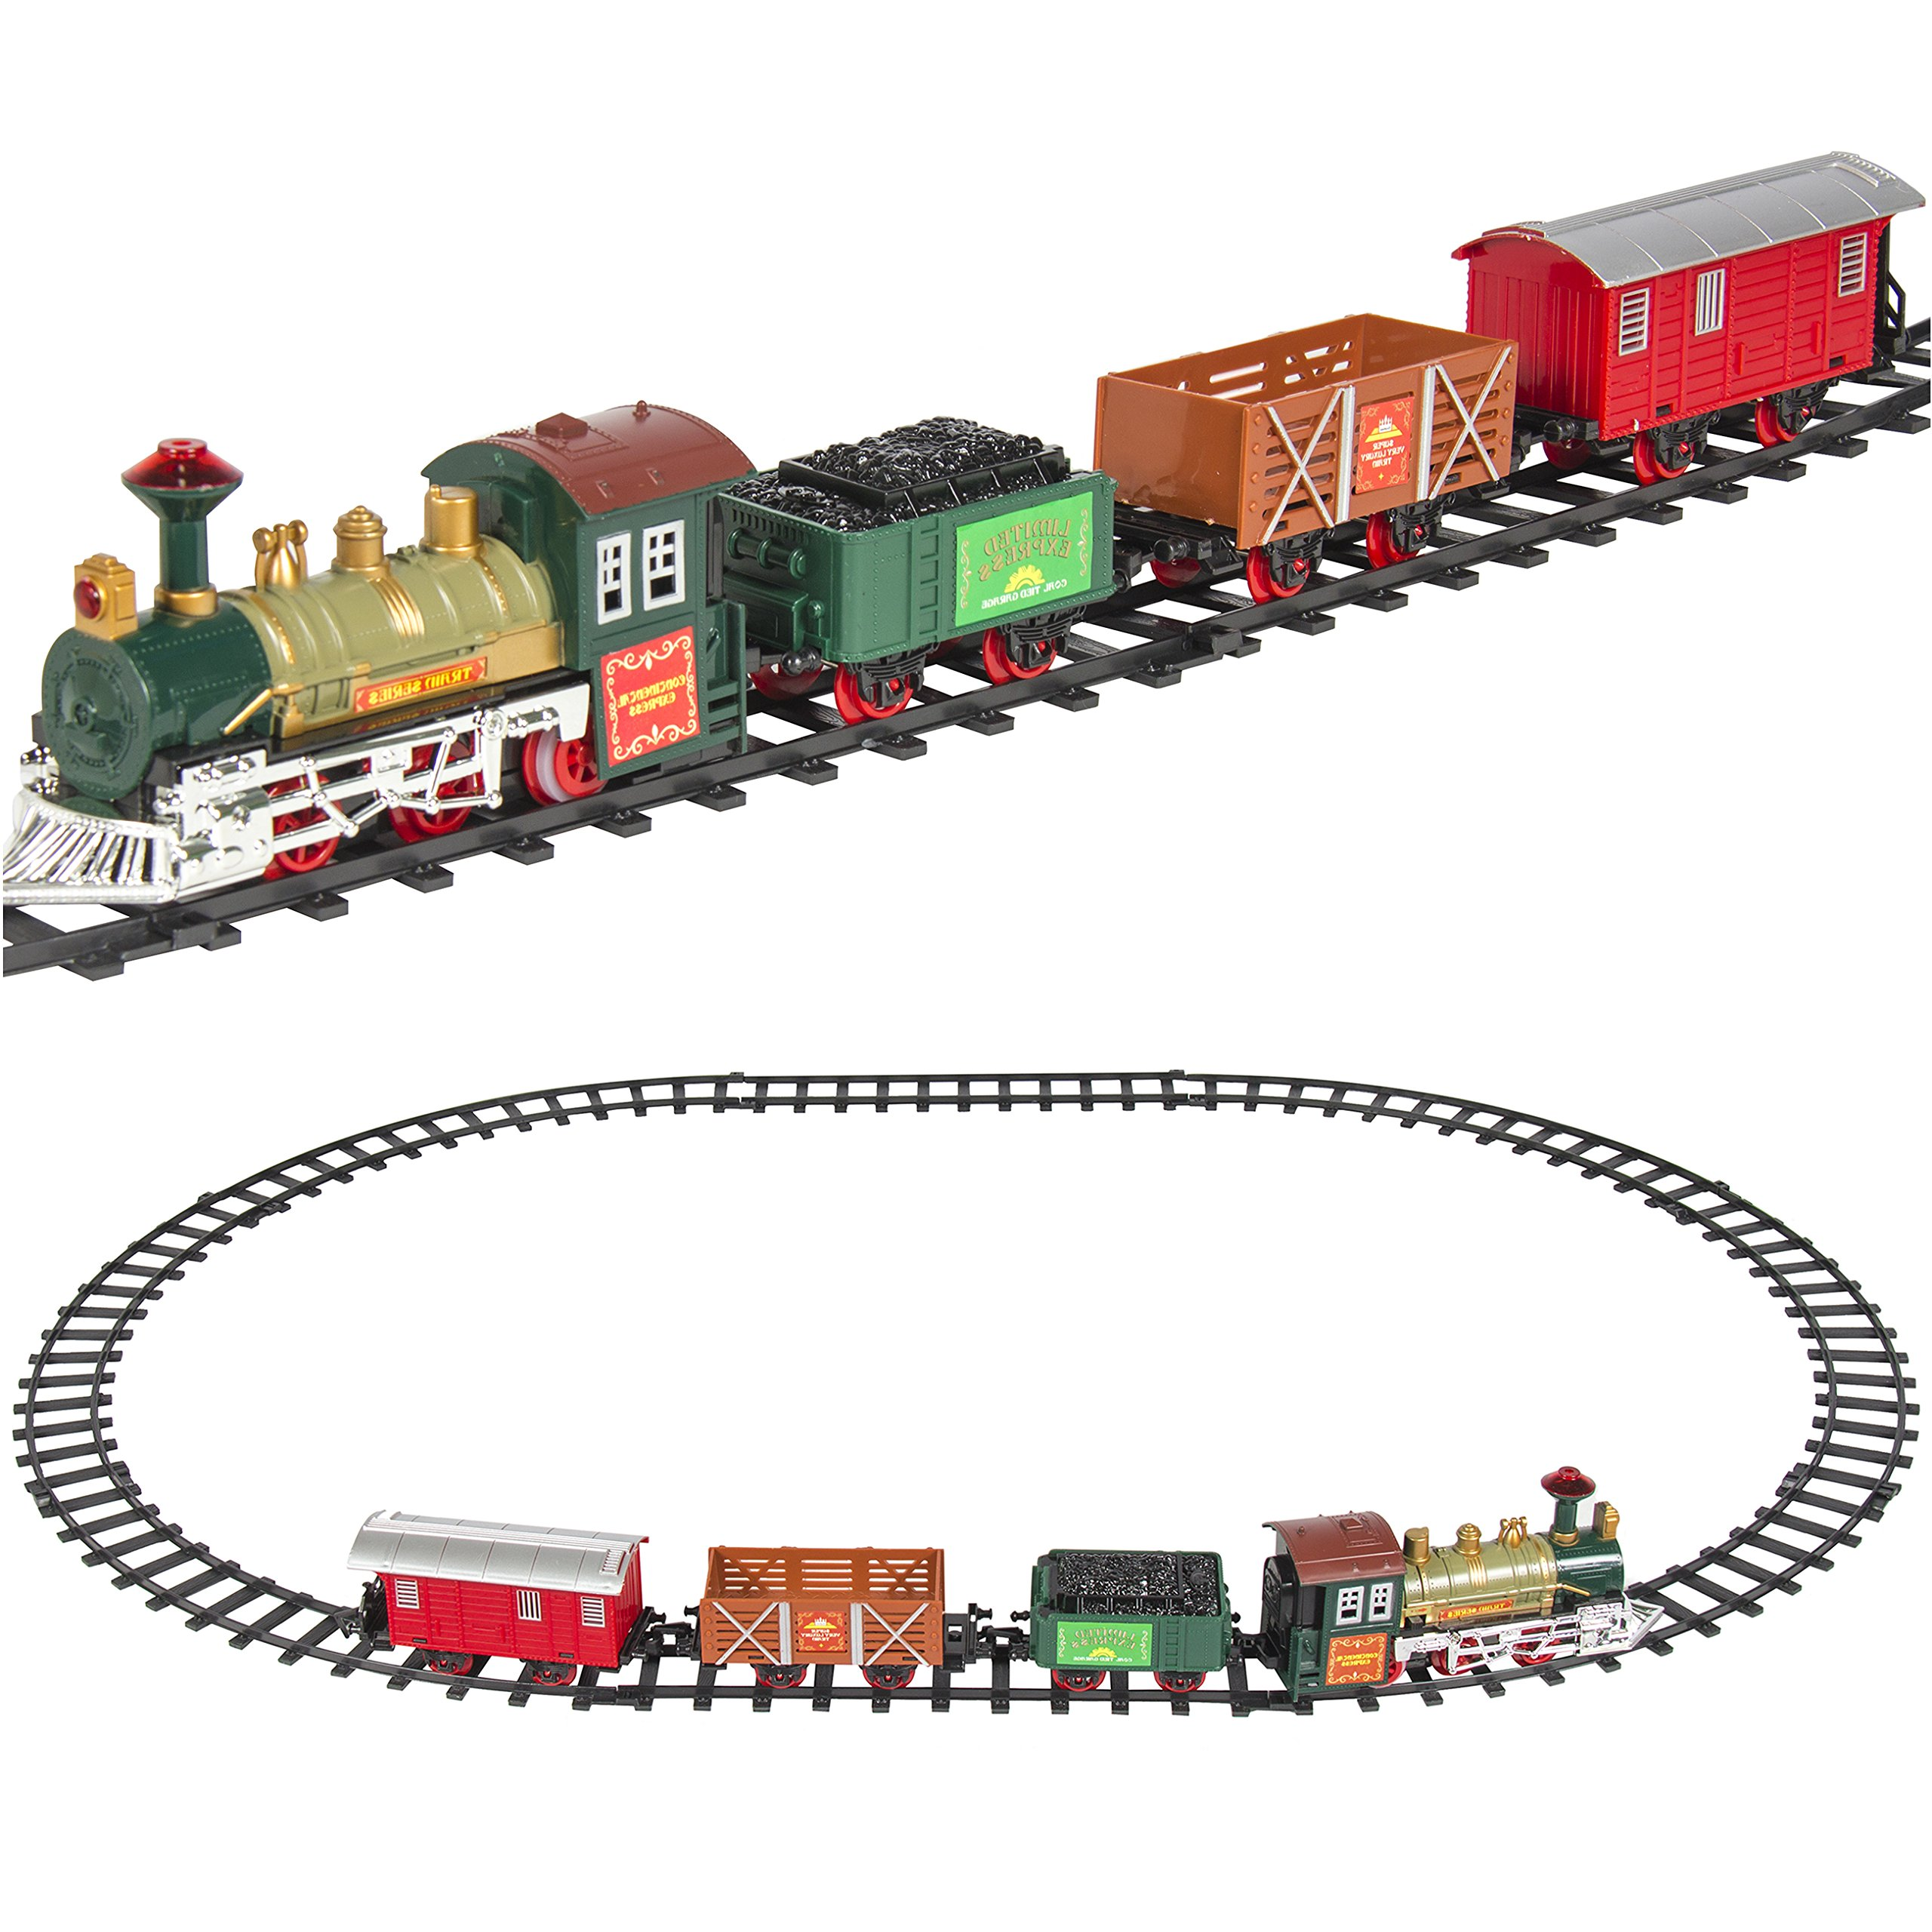 Best Choice Products Kids Classic Electric Railway Train Car Track Set for Play Toy, Decor w/ Music, Lights - Multicolor